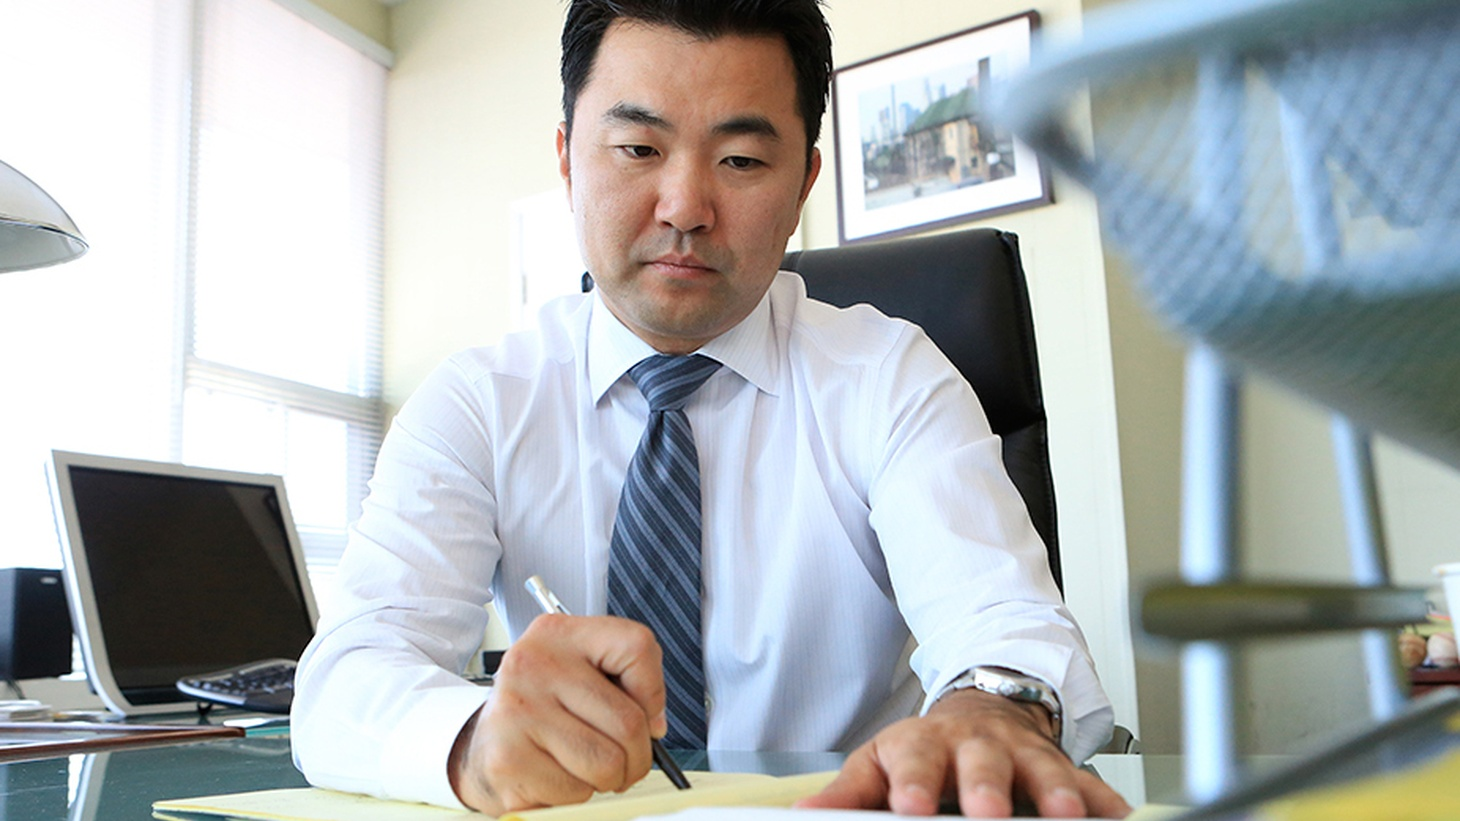 """David Ryu was sworn in yesterday as LA's first Korean-American City Councilman and the only the second member of Asian descent. Ryu defeated an establishment favorite, and raised high expectations among supporters with his promise to be an """"outsider."""" We ask him how he can make good on that promise and still get anything done on a council known for unanimity among """"insiders?"""""""